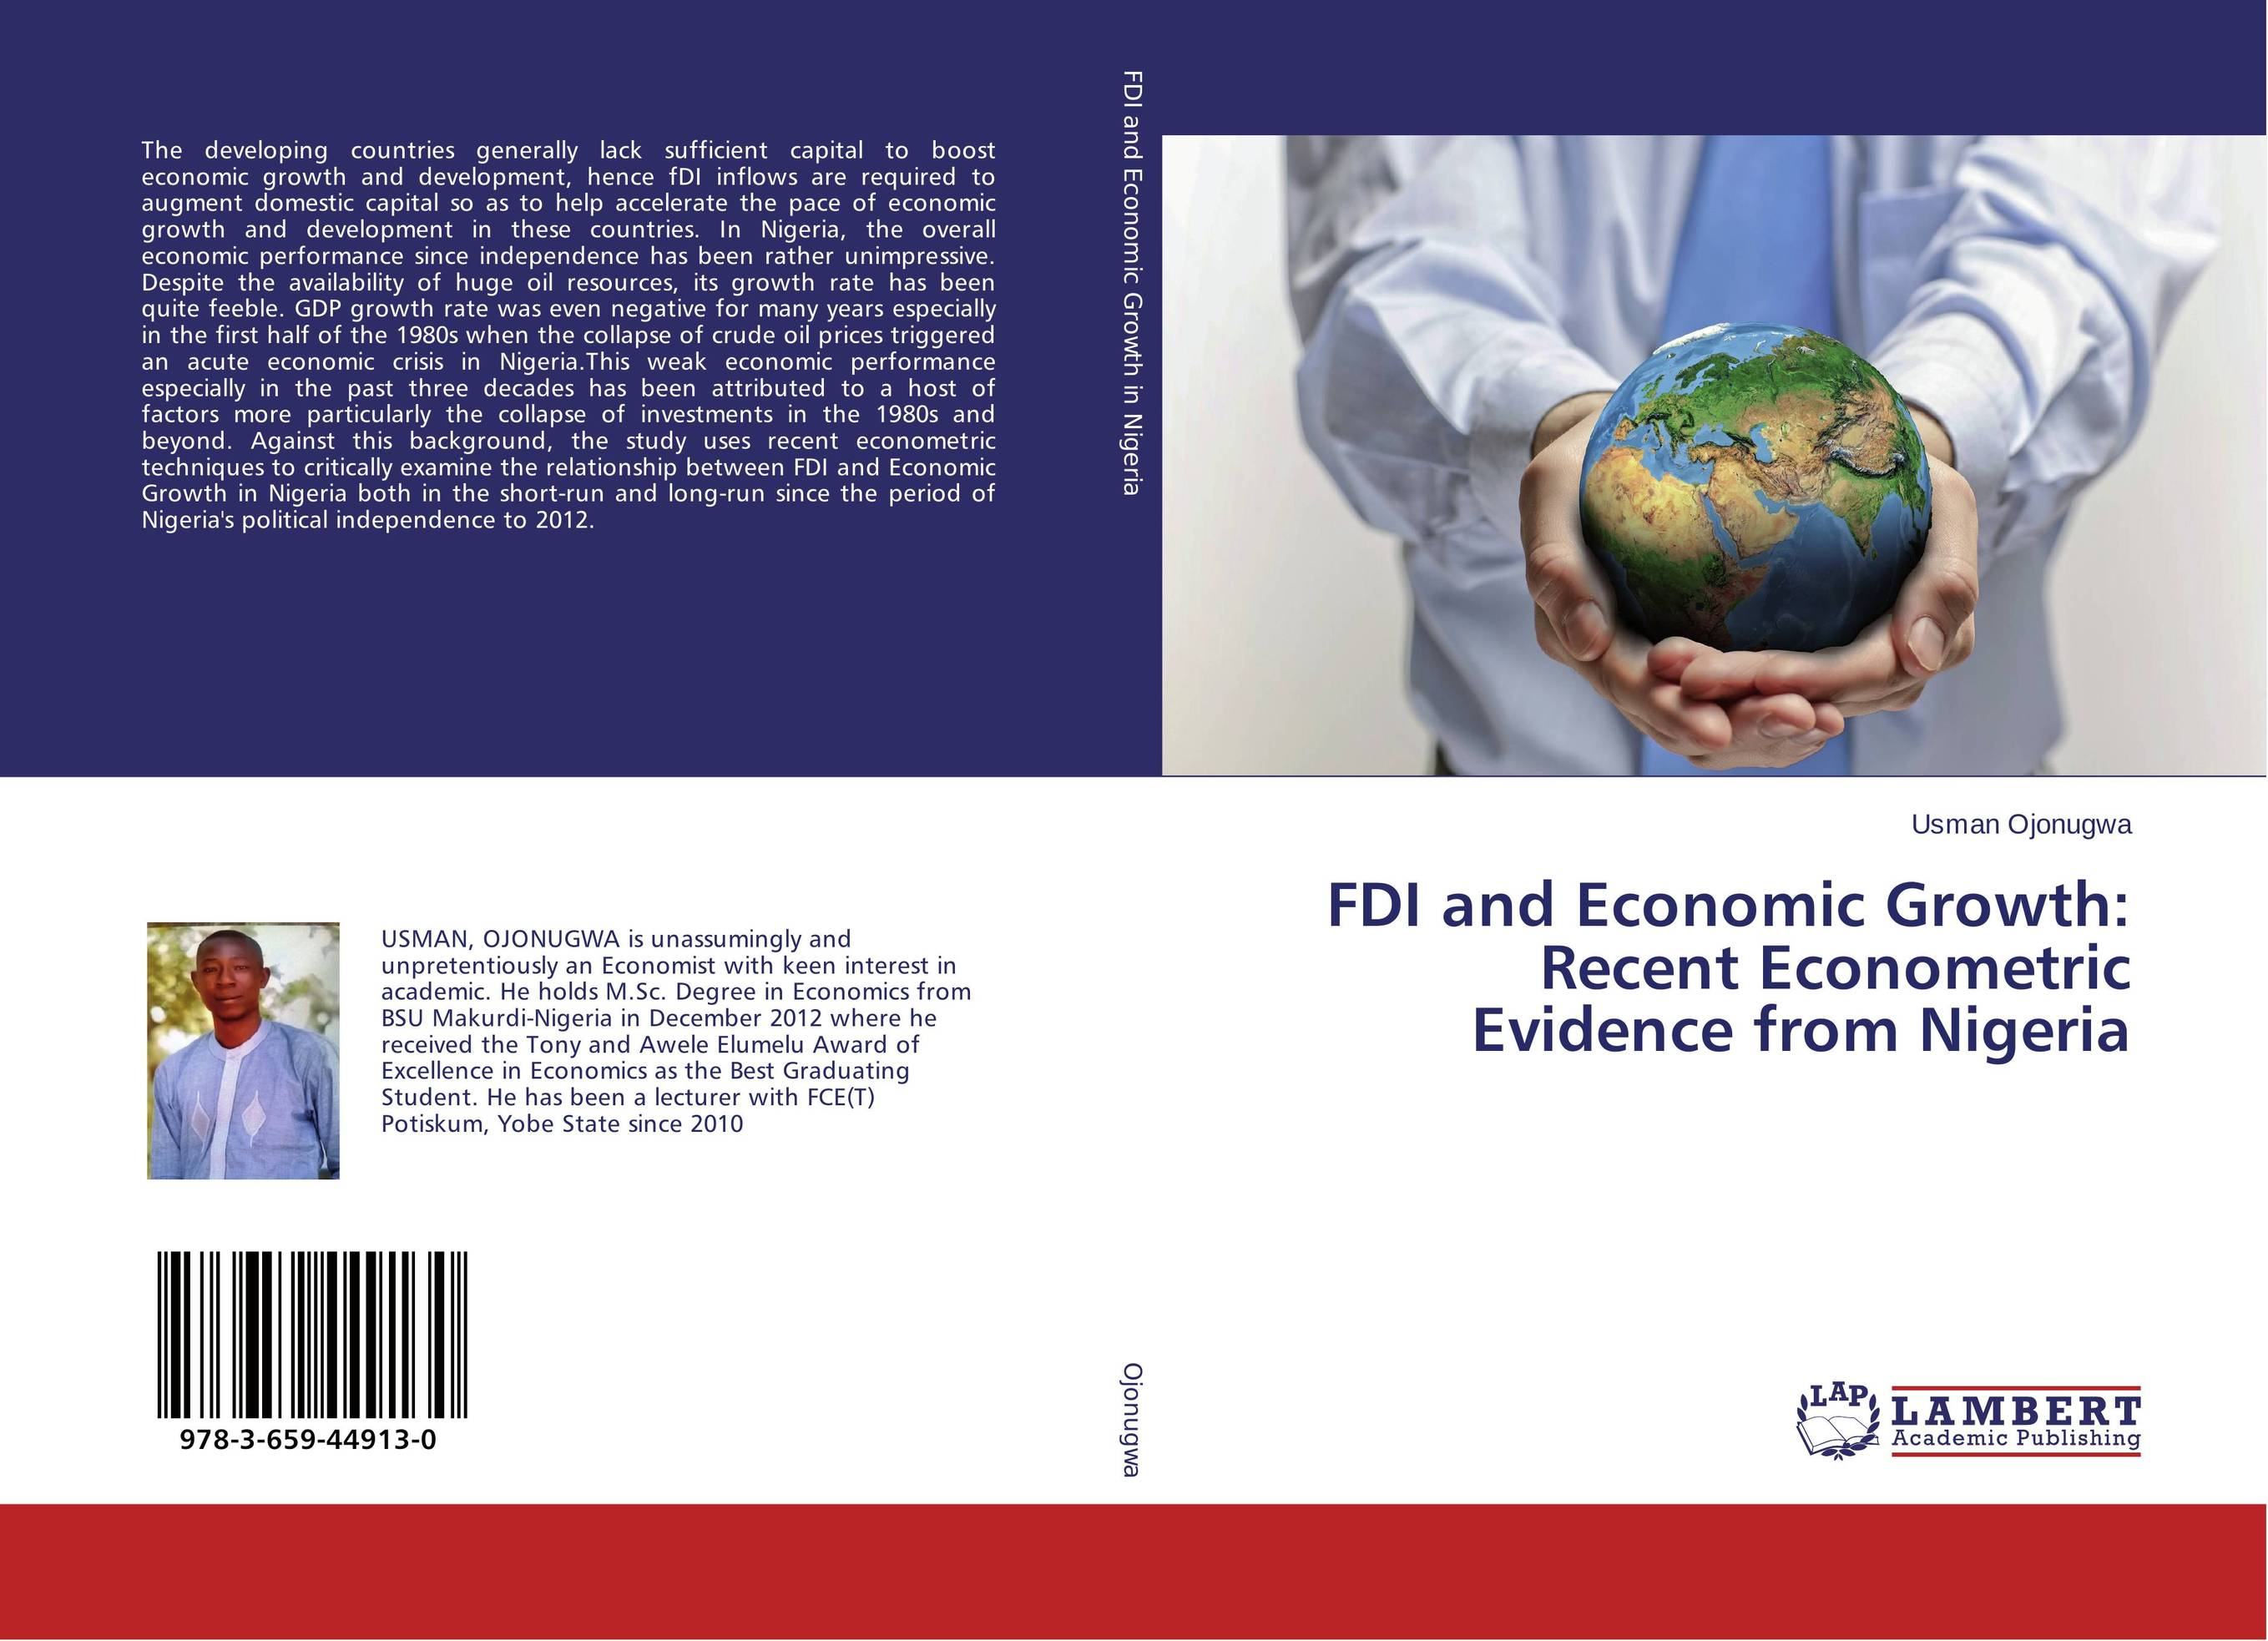 FDI and Economic Growth: Recent Econometric Evidence from Nigeria economic methodology